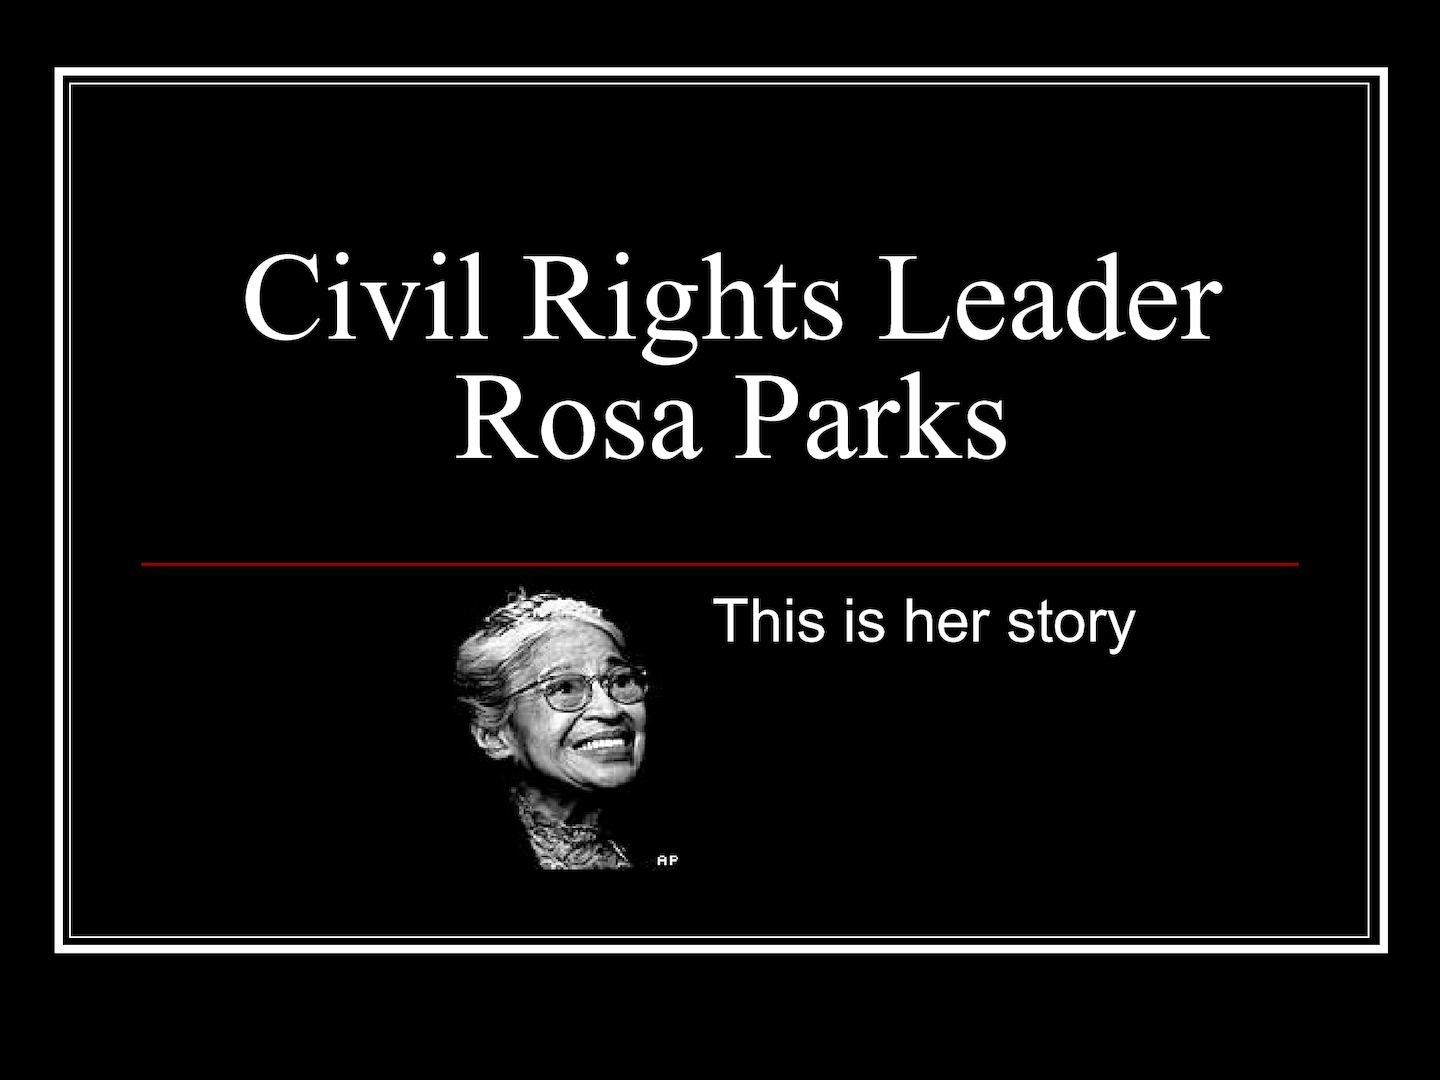 a biography of rosa parks an american civil rights leader